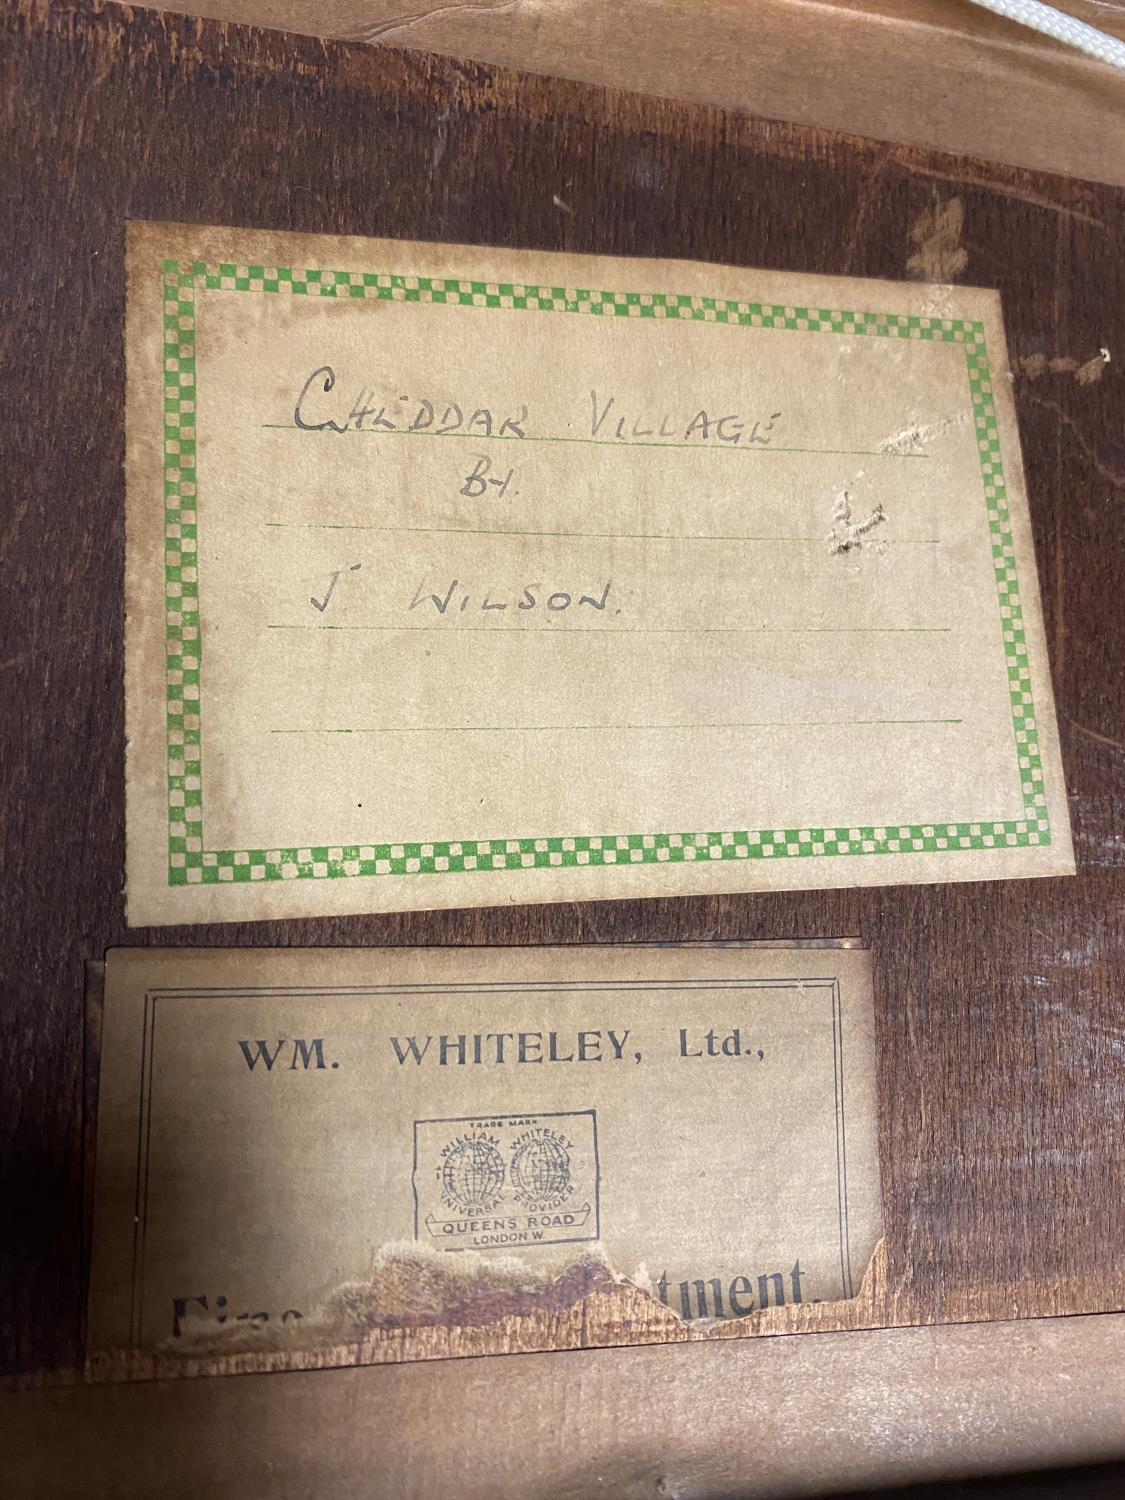 Pair of C19th watercolours, label verso, Cheddar Village and Porlock Village by Moonlight, J Wilson, - Image 4 of 7